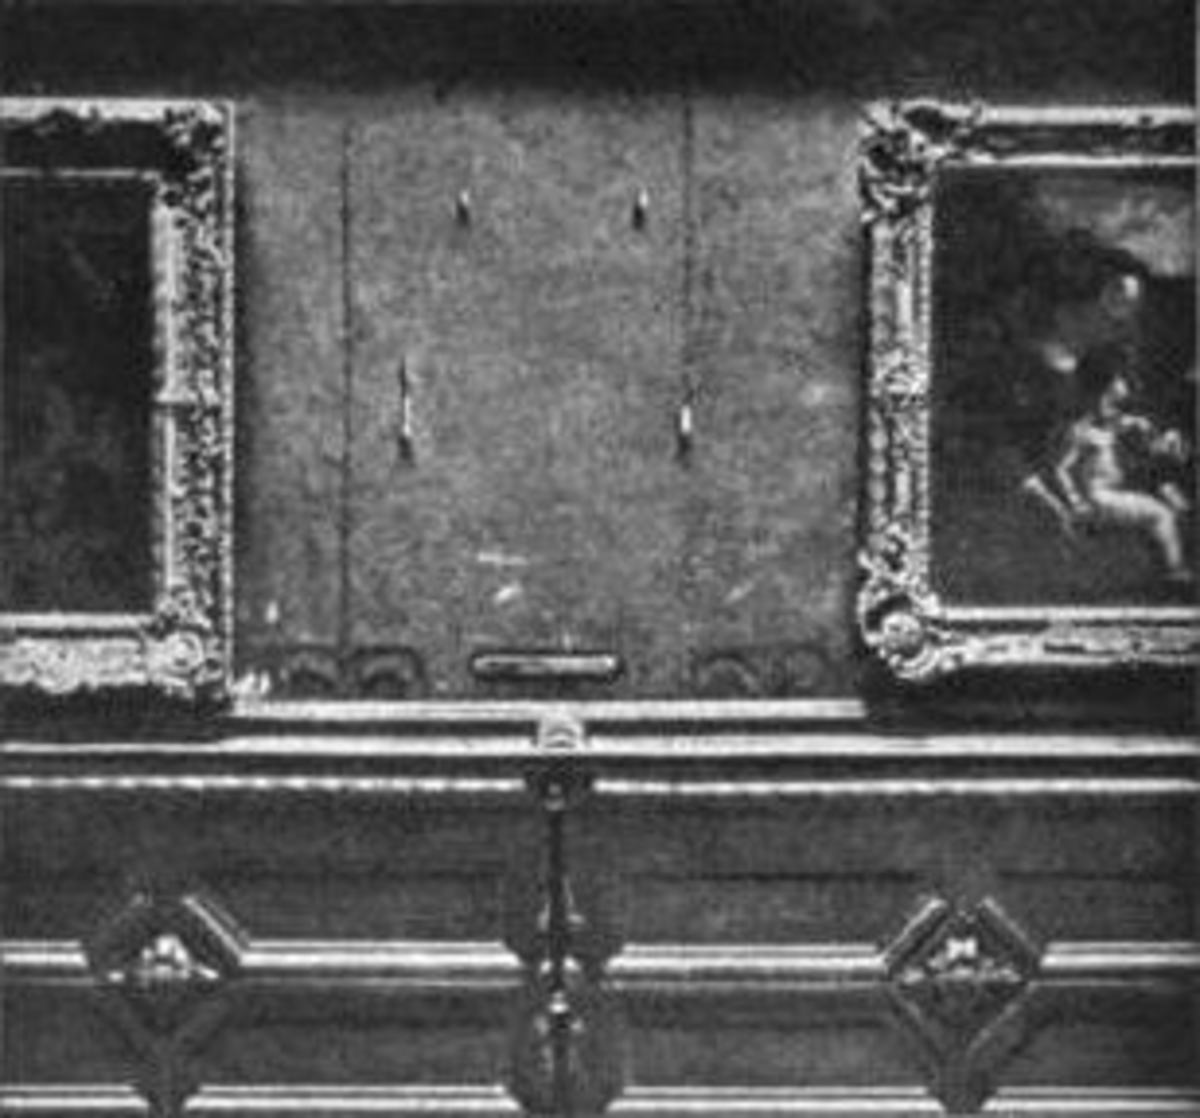 The empty space where La Gioconda had been hung.